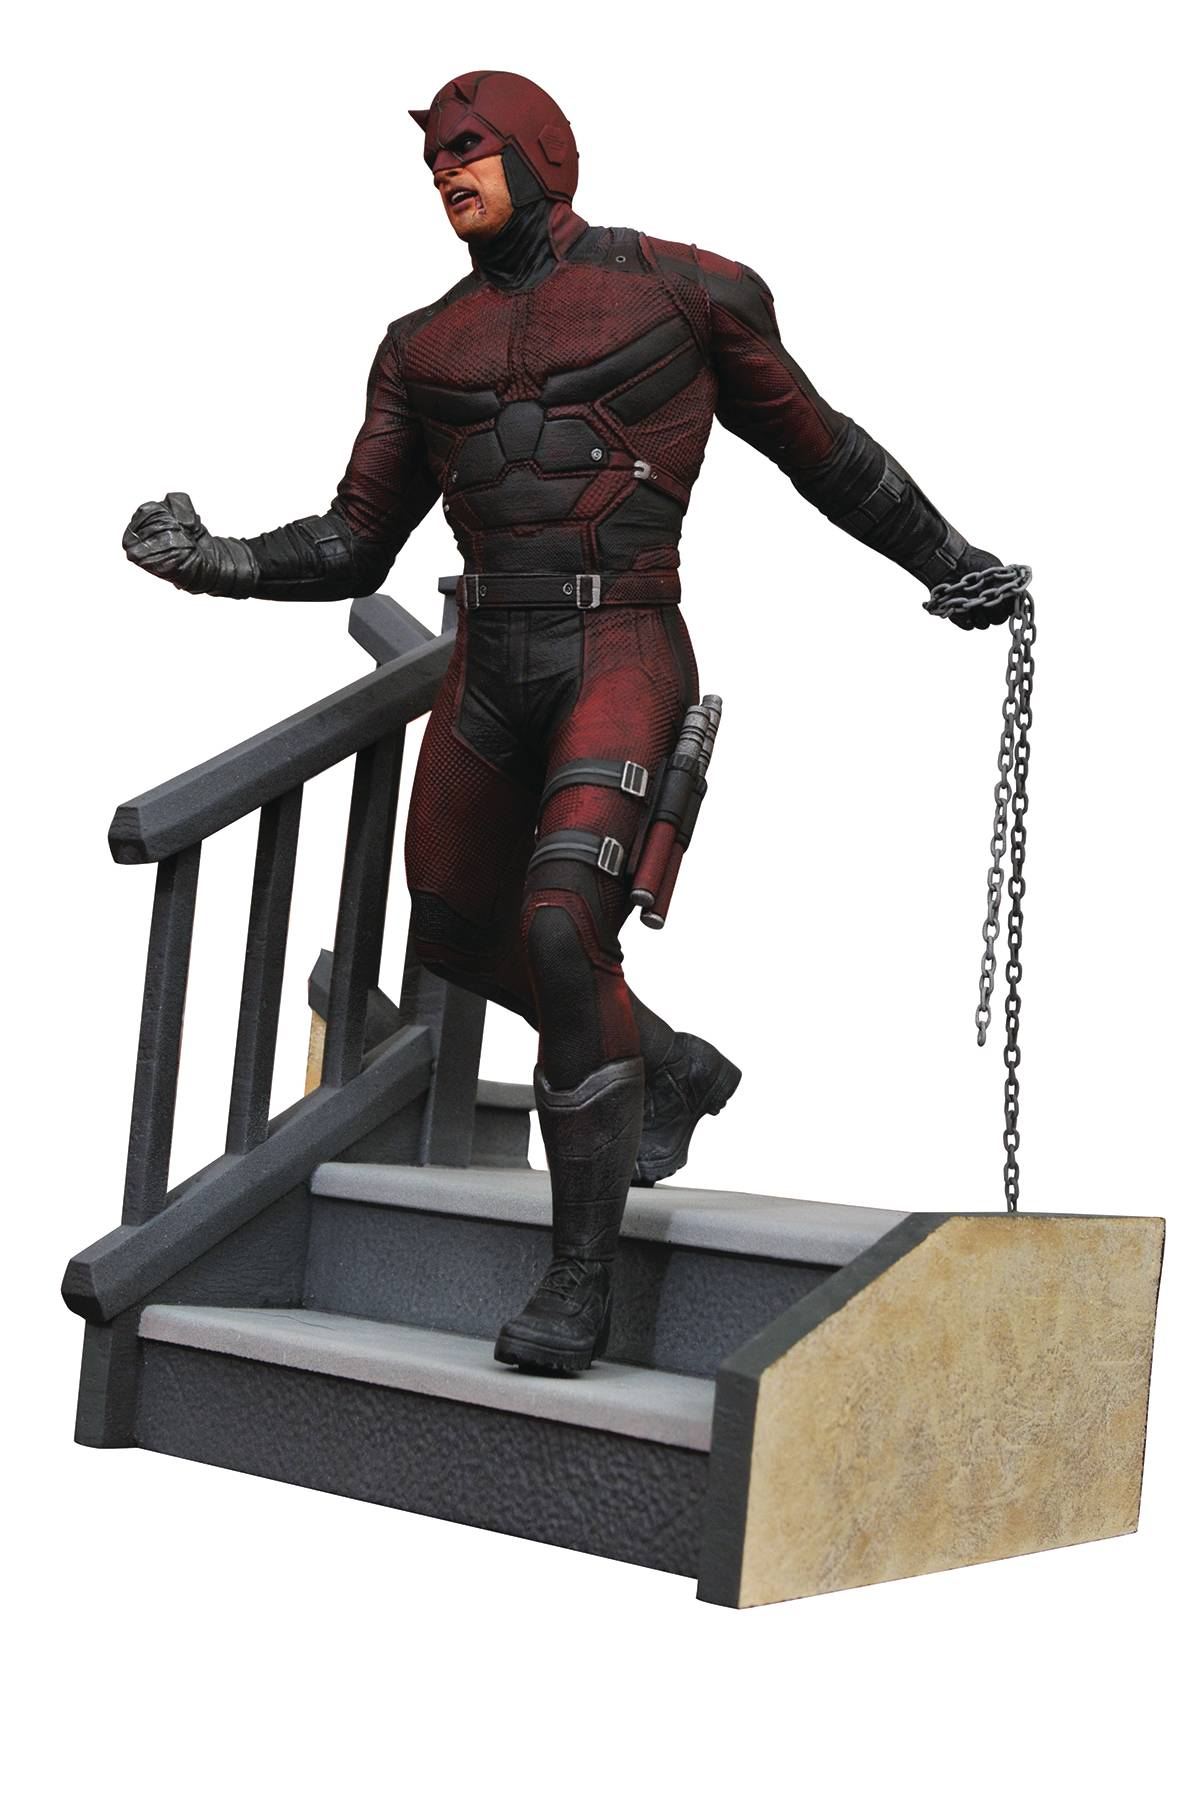 Pre-Order Diamond Marvel Premier Collection Daredevil Statue